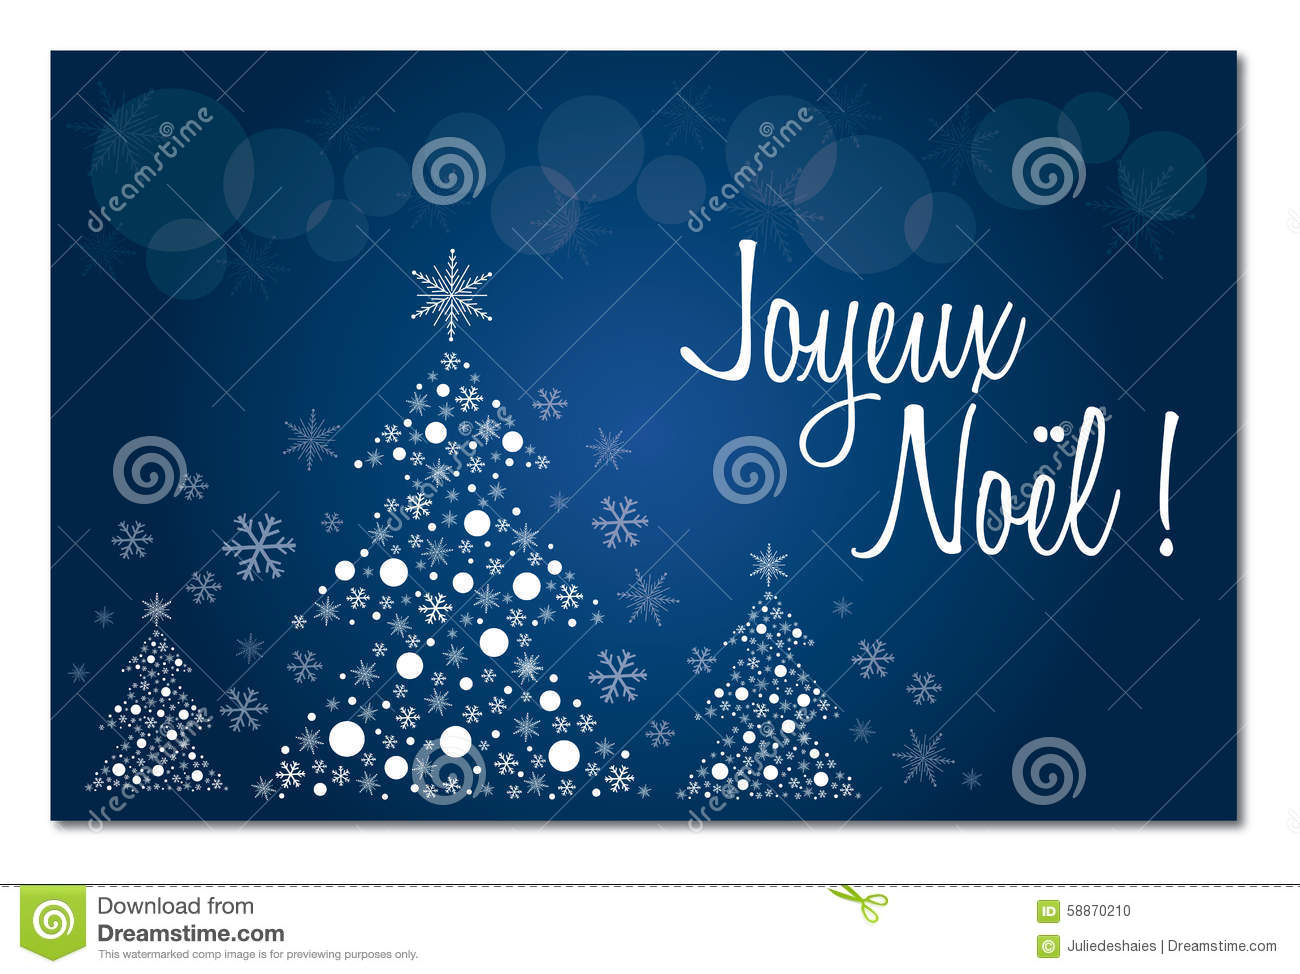 Merry Christmas Blue French Greeting Card In French Illustration